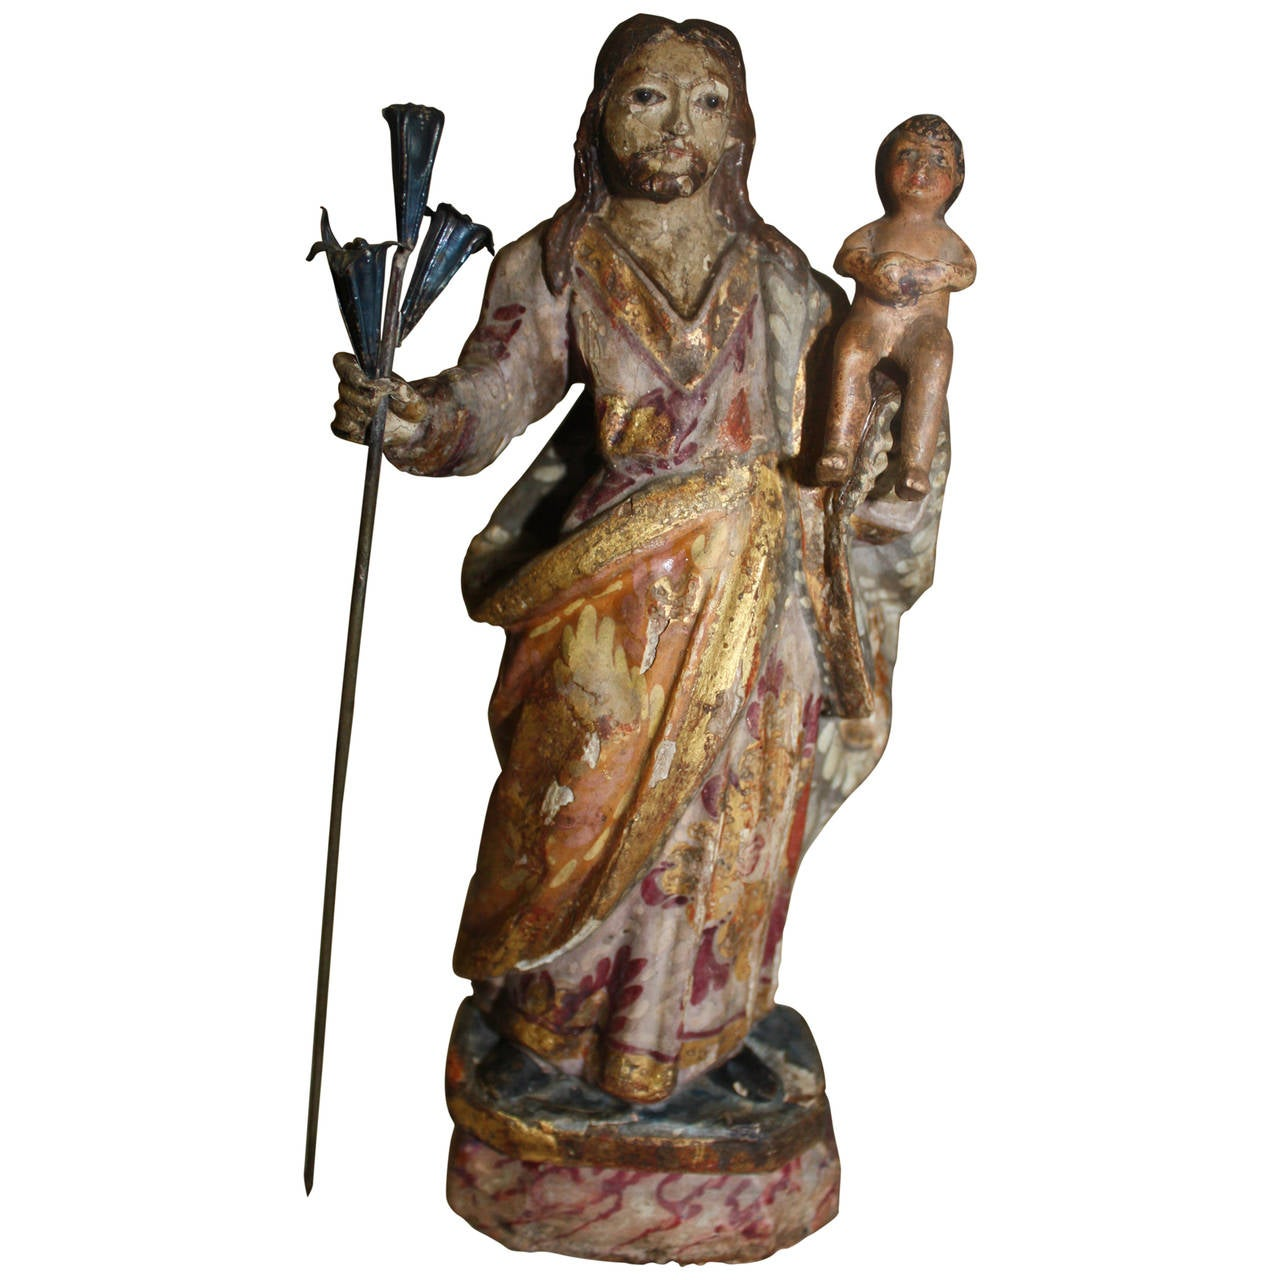 17th Century Religious Wood Sculpture